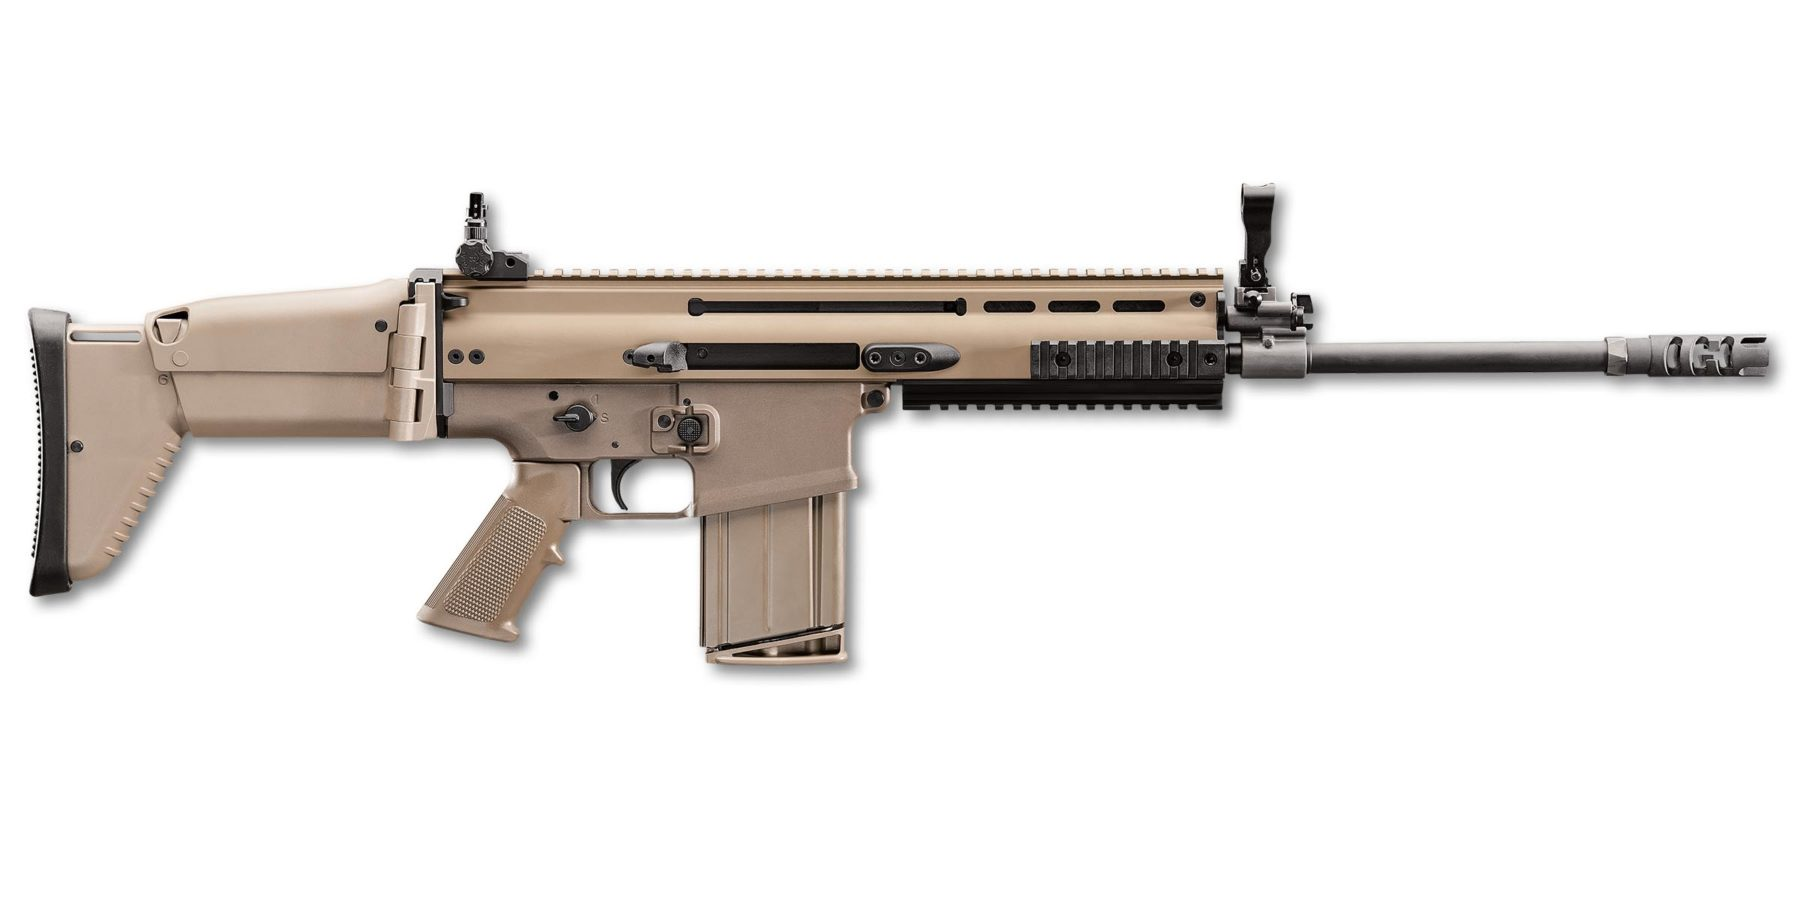 Best Bipod and Optic for an FN SCAR